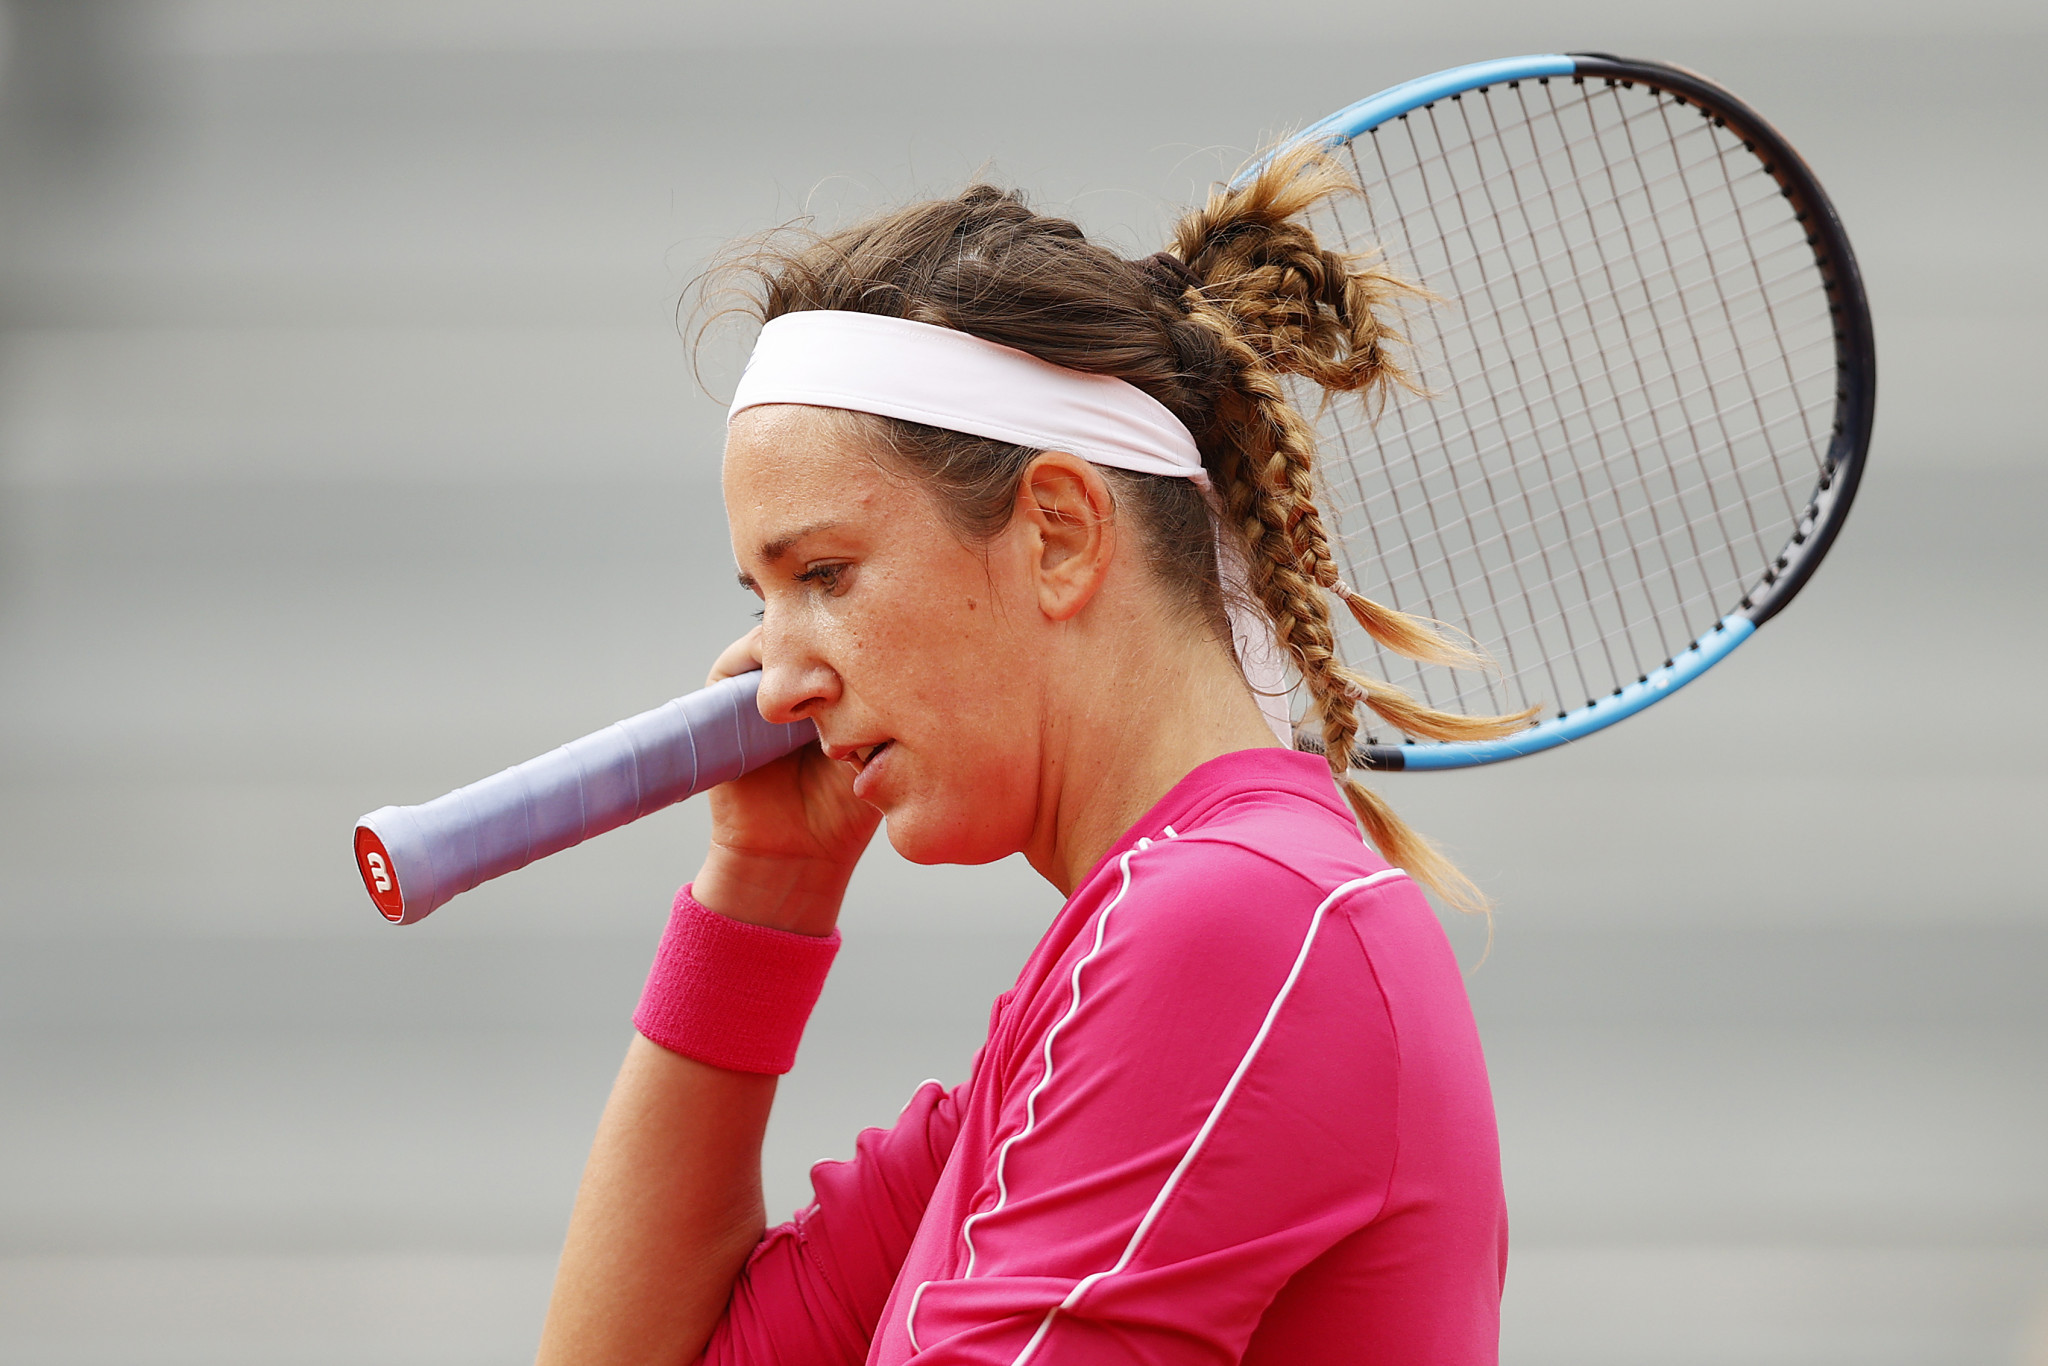 Victoria Azarenka is believed to be among 47 players who have been forced to isolate in their hotel rooms for 14 days ©Getty Images